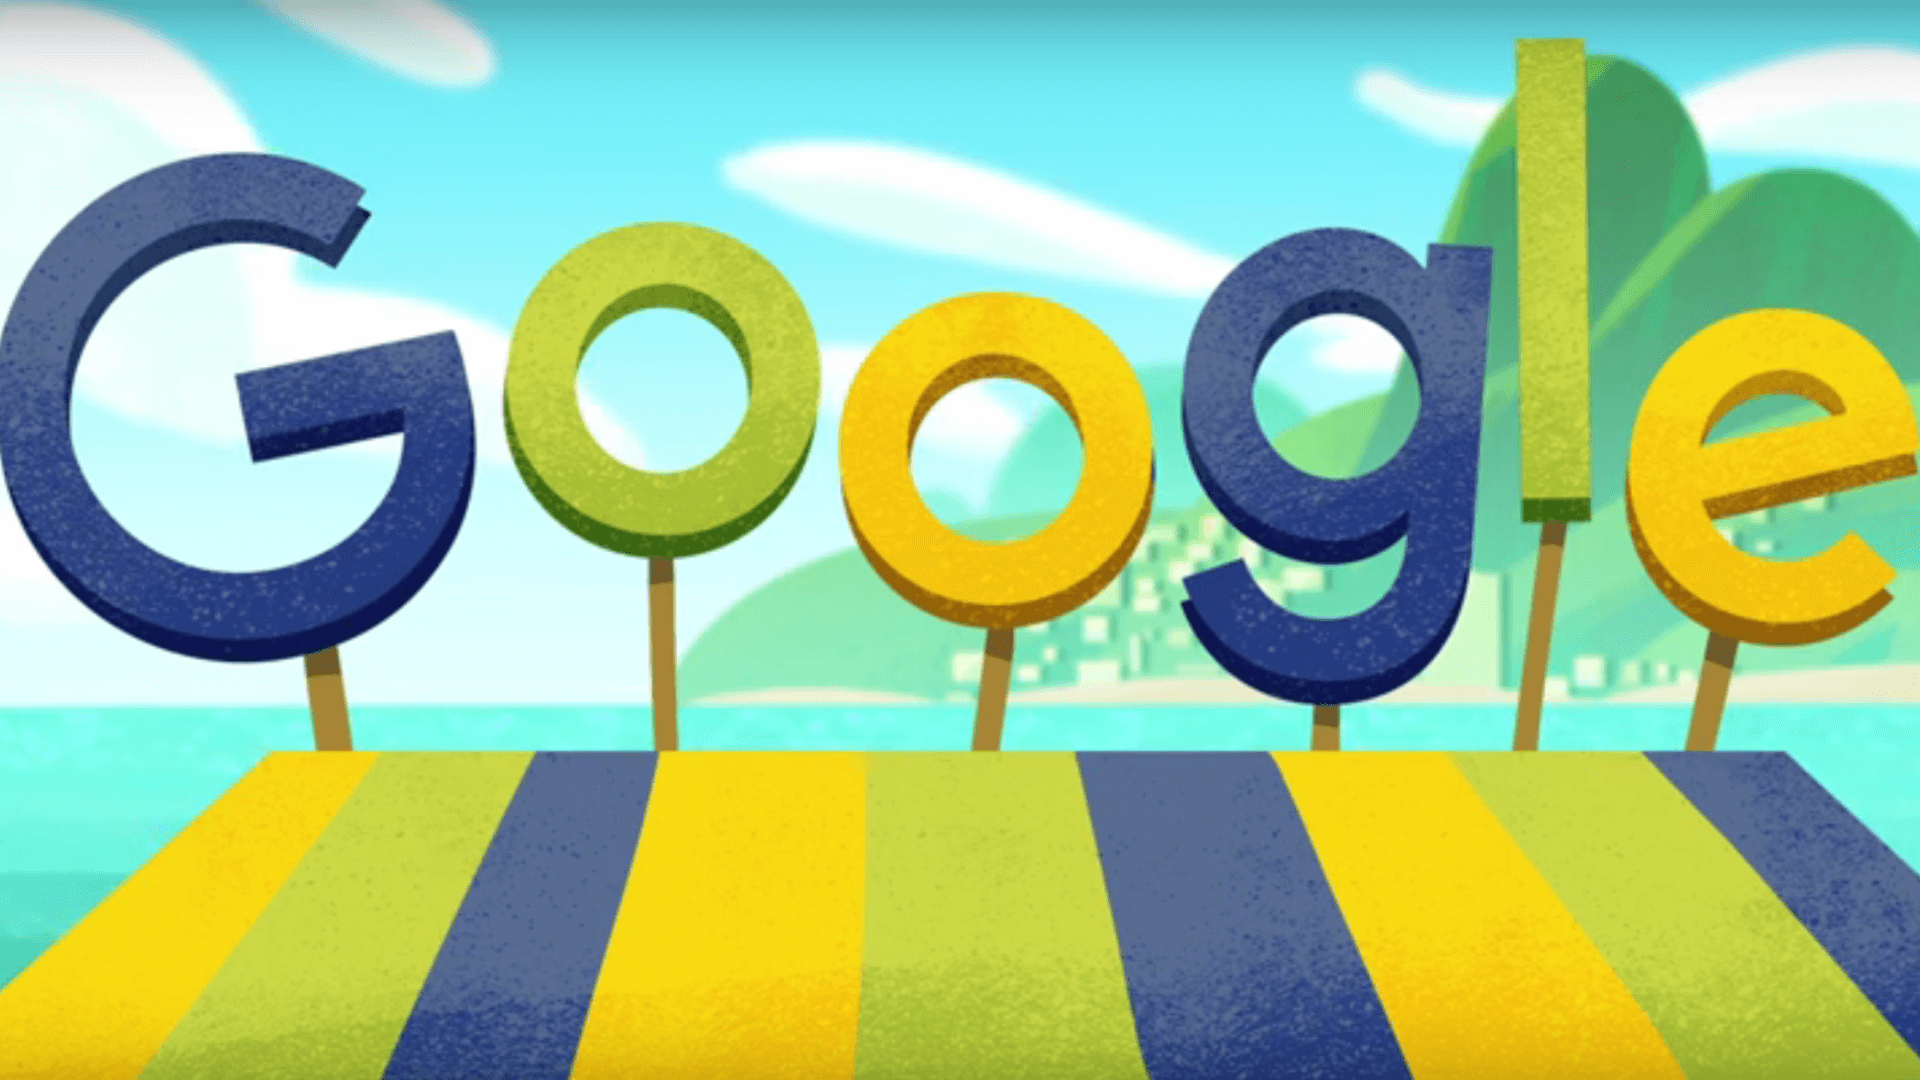 Rio Olympic 17 Days Of 2016 Rio Olympic Google Doodles A Full List Of